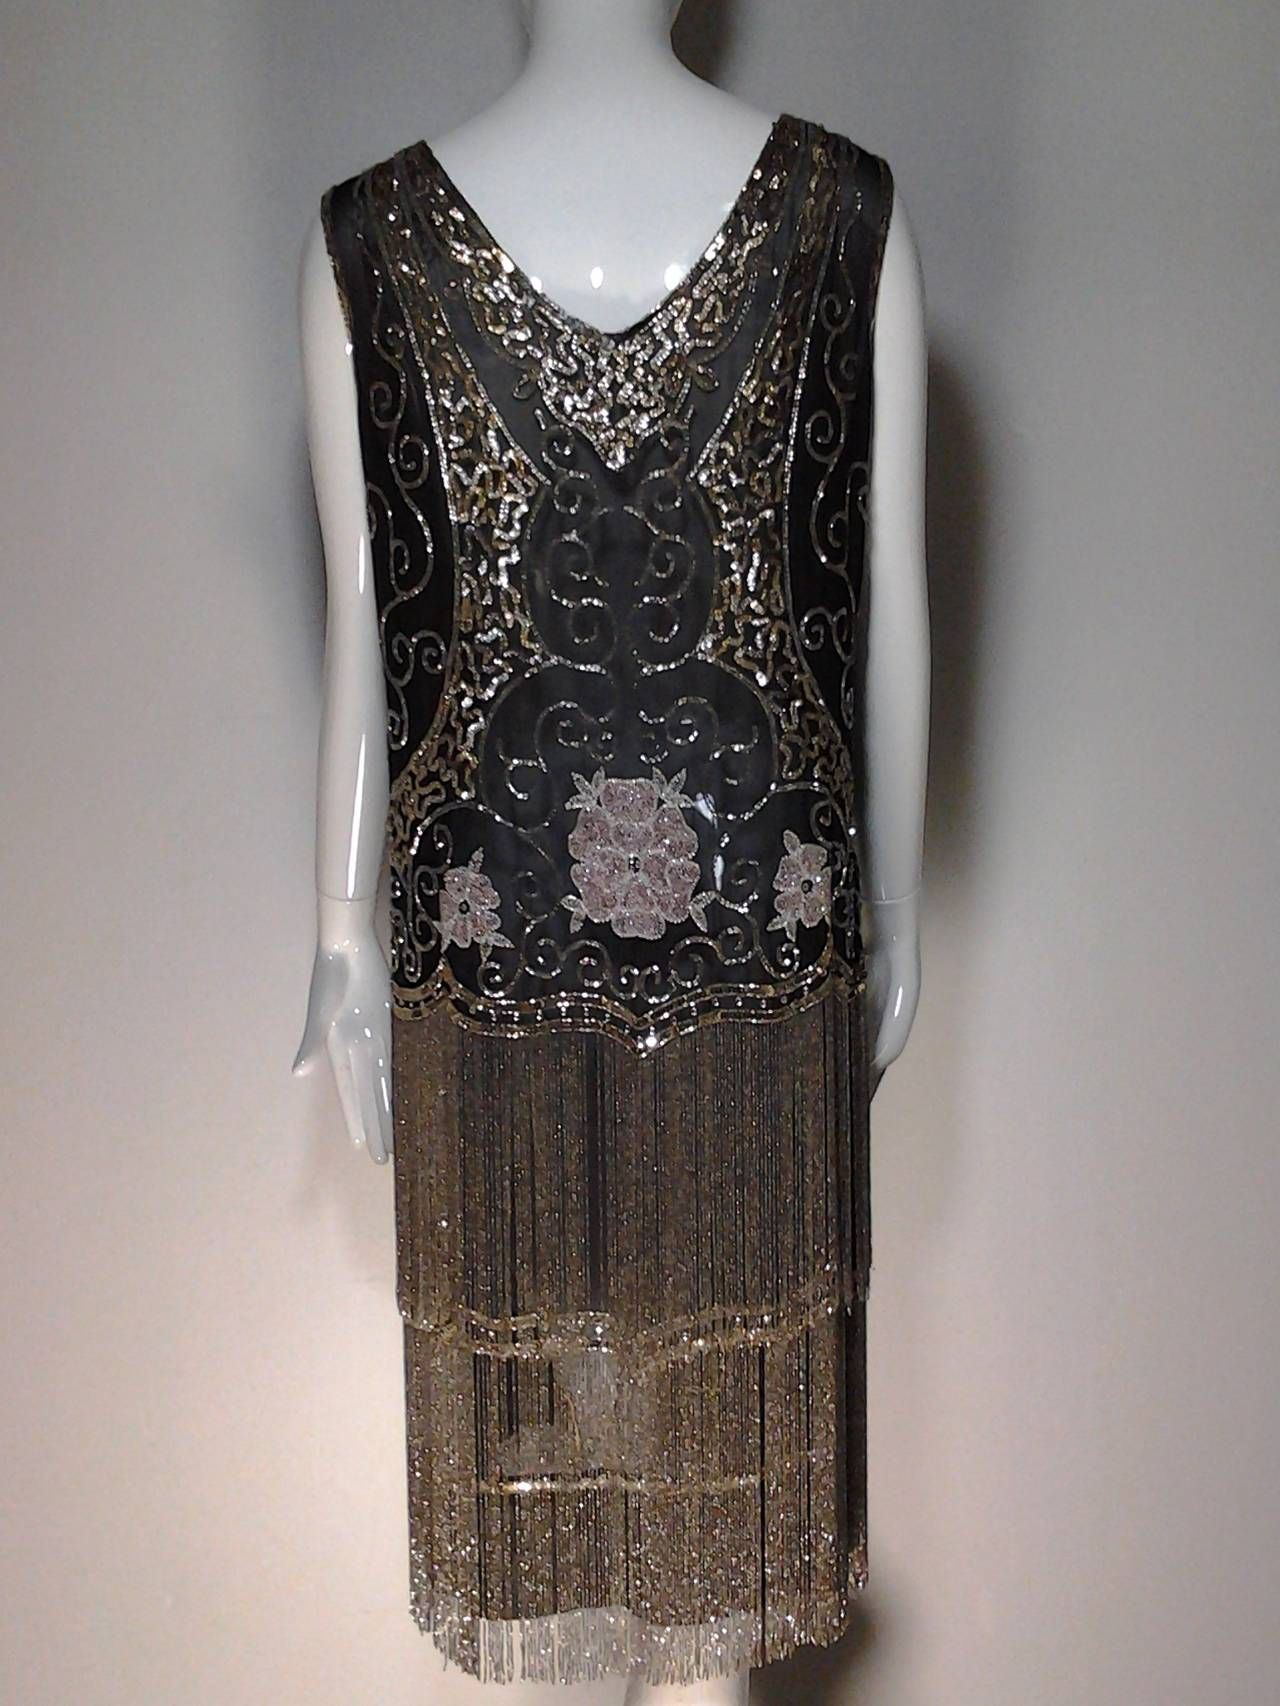 """1920s French Art Deco sheer silk crepe fringed """"flapper"""" dress:   Black fabric with sequin and beaded """"Arabesque"""" design.  Dropped waist skirt is heavily embellished with 2 tiers of silver beaded fringe measuring 9"""" each.   Flowers beaded in"""